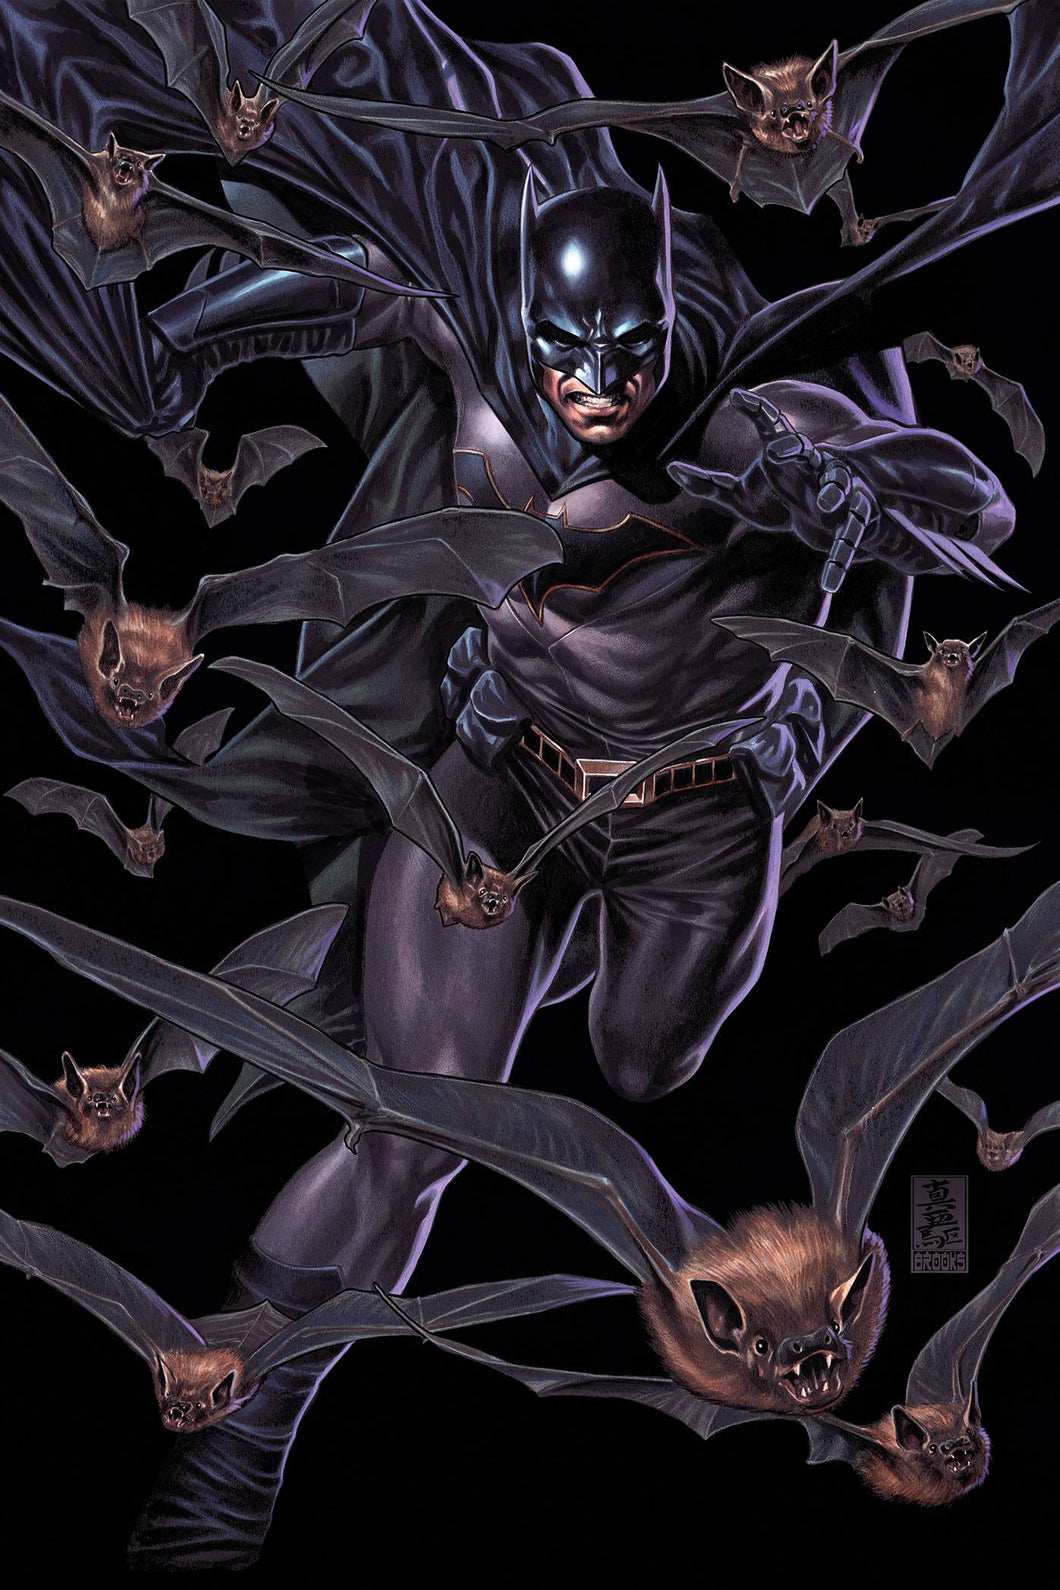 DETECTIVE COMICS #985 MARK BROOKS VARIANT FOC 07/02 (ADVANCE ORDER) 07/25